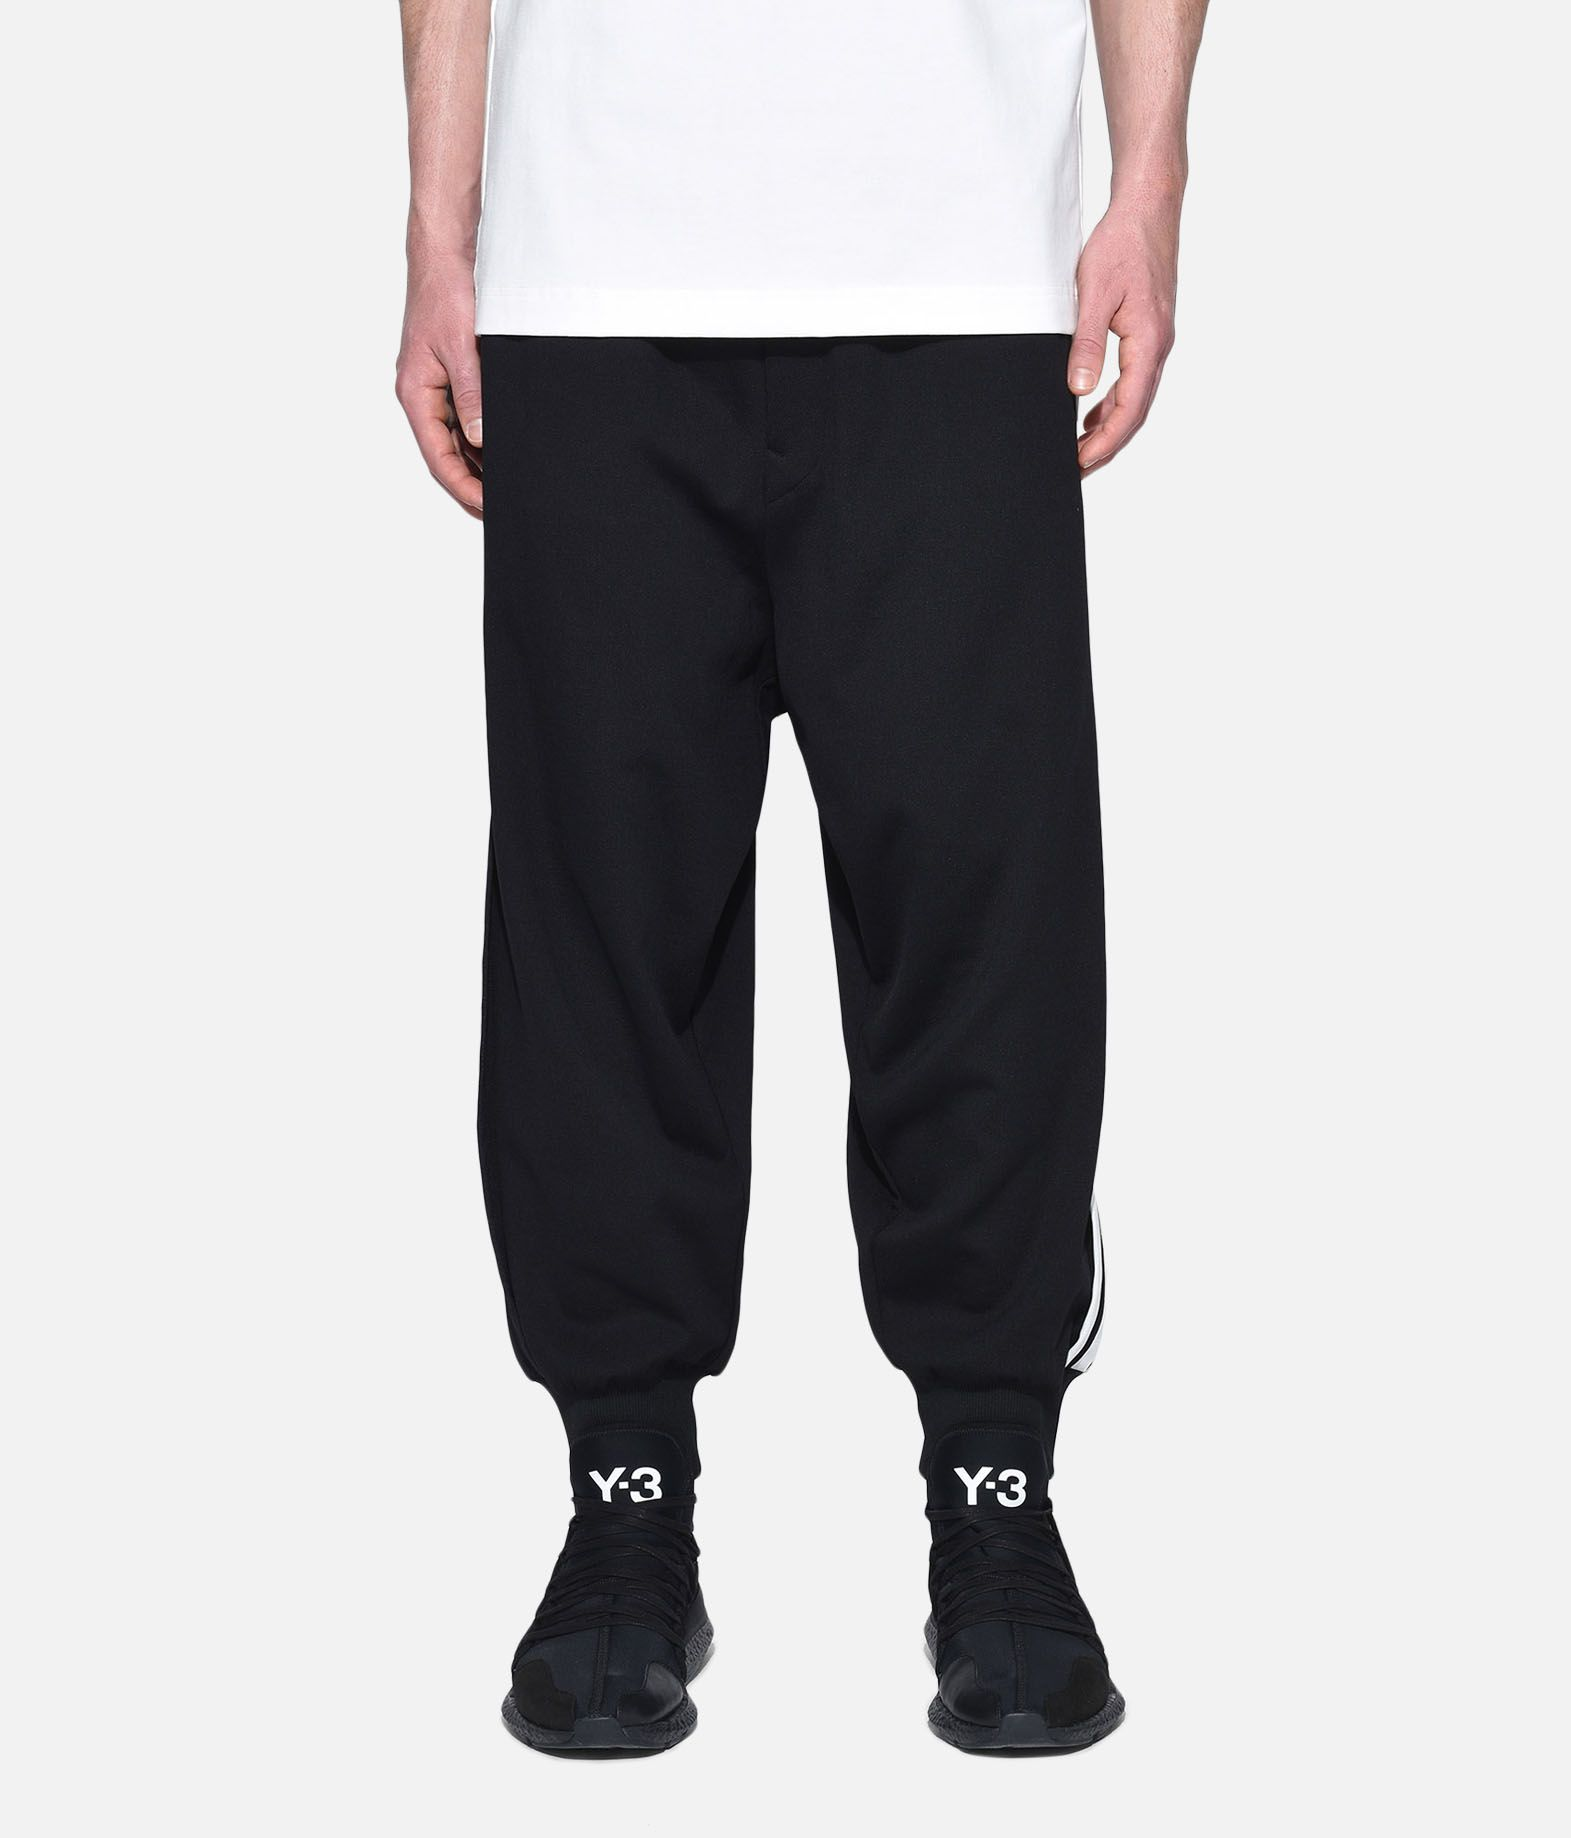 Y-3 Y-3 3-Stripes Selvedge Matte Track Pants Track pant Man r